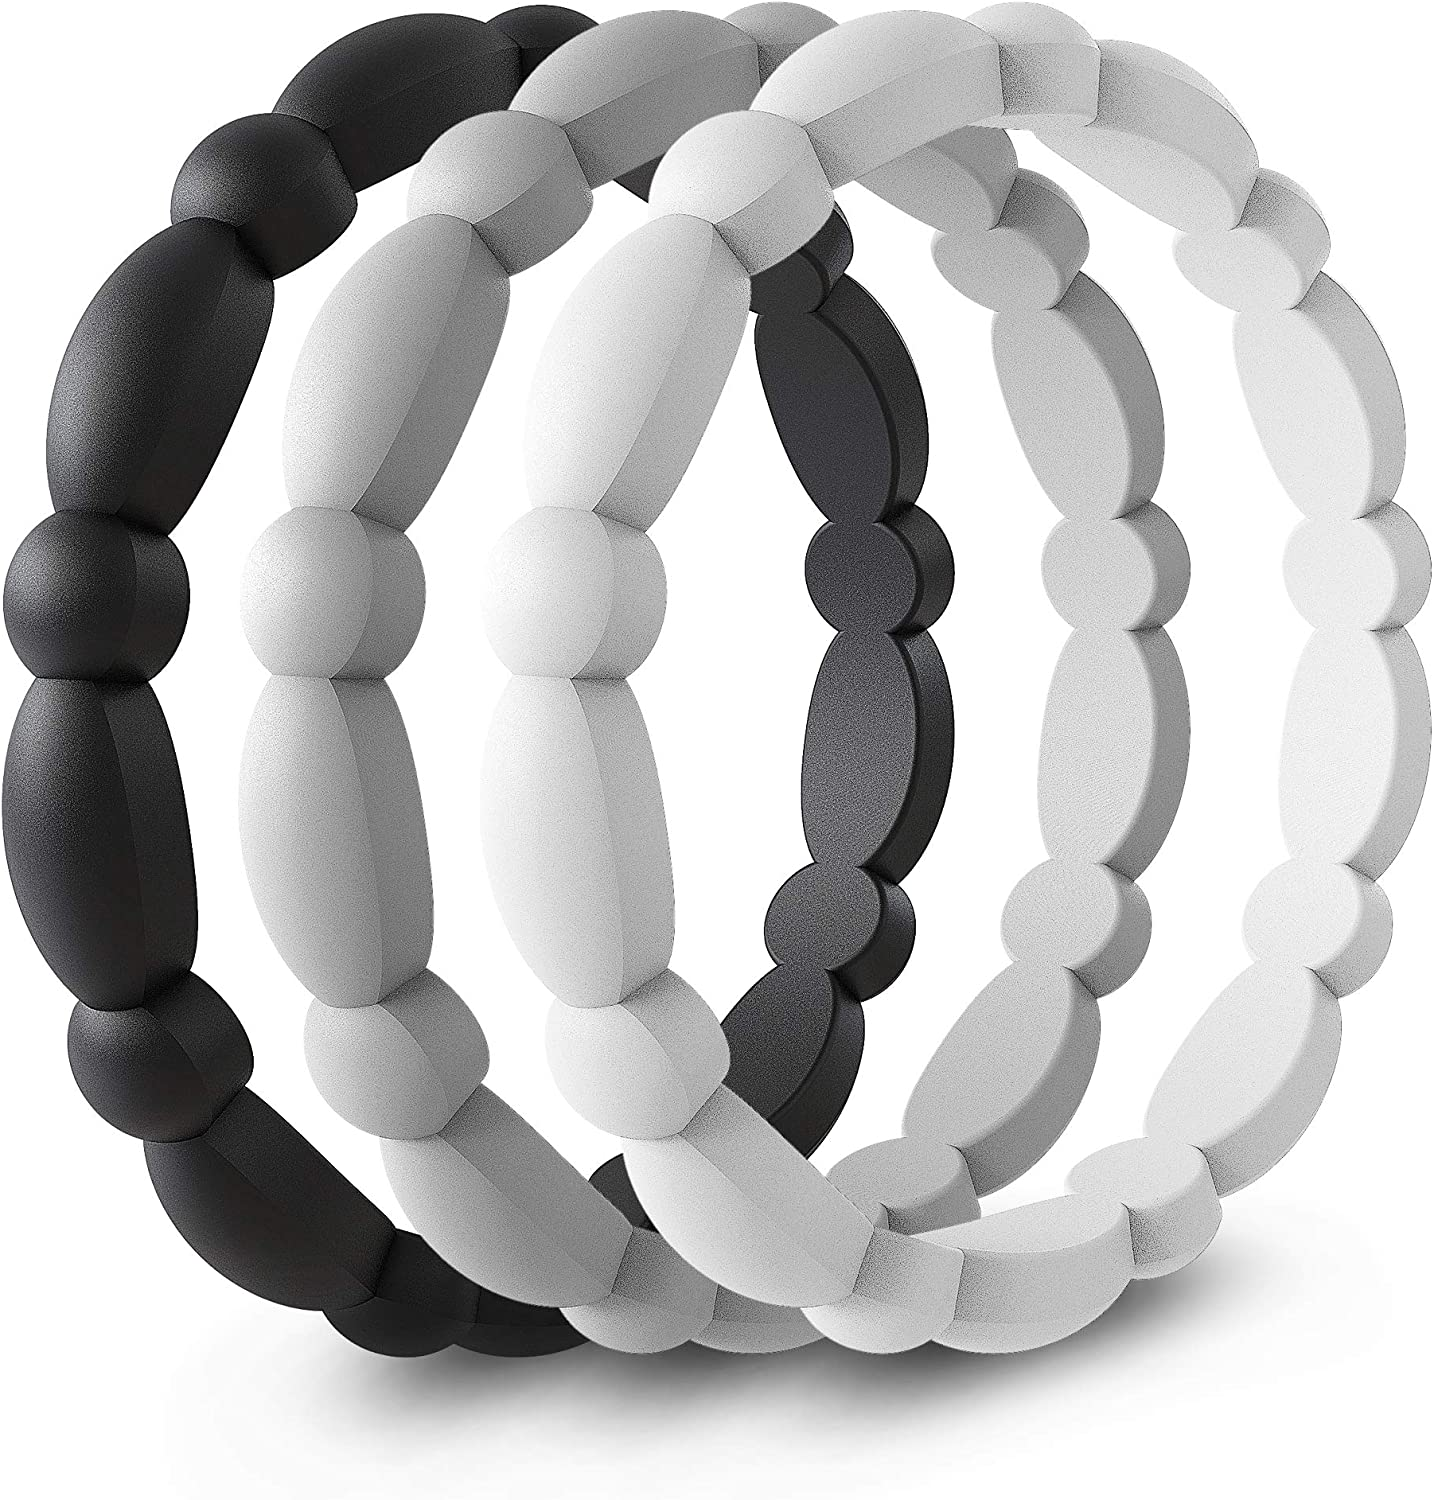 Single Pack Black,White,Silver, 7-7.5 3mm Wide 5 Pack 17.2mm ASTERY Premium Flower Silicone Wedding Ring for Women-Stackable Thin Rubber Wedding Bands-3 Pack